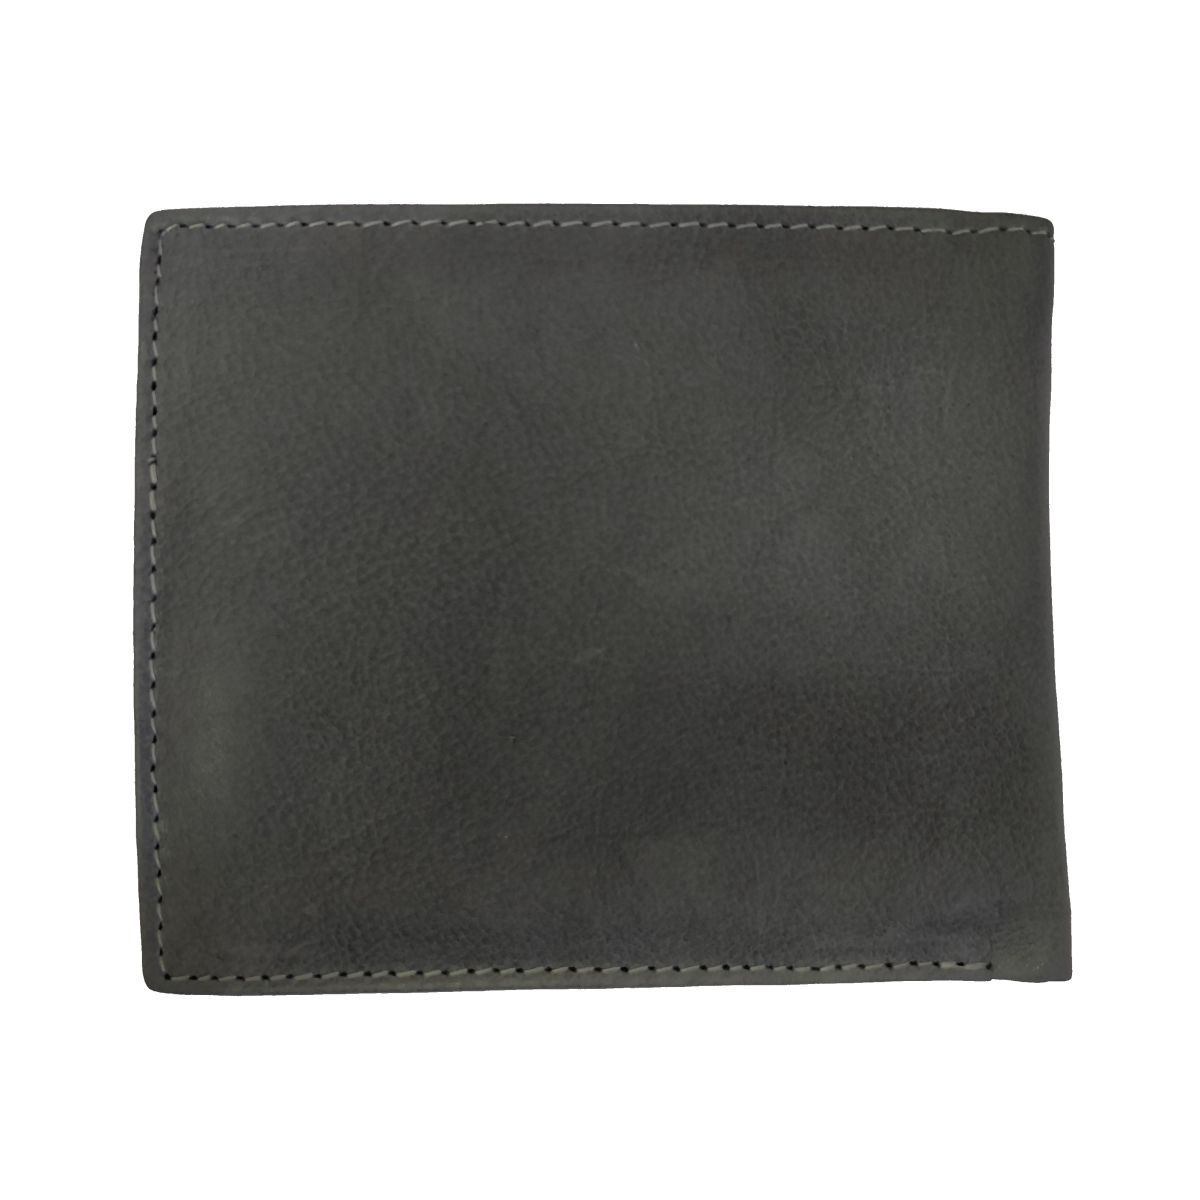 solo Leather Wallet Sixteen Holes With Coin Pouch - Grey